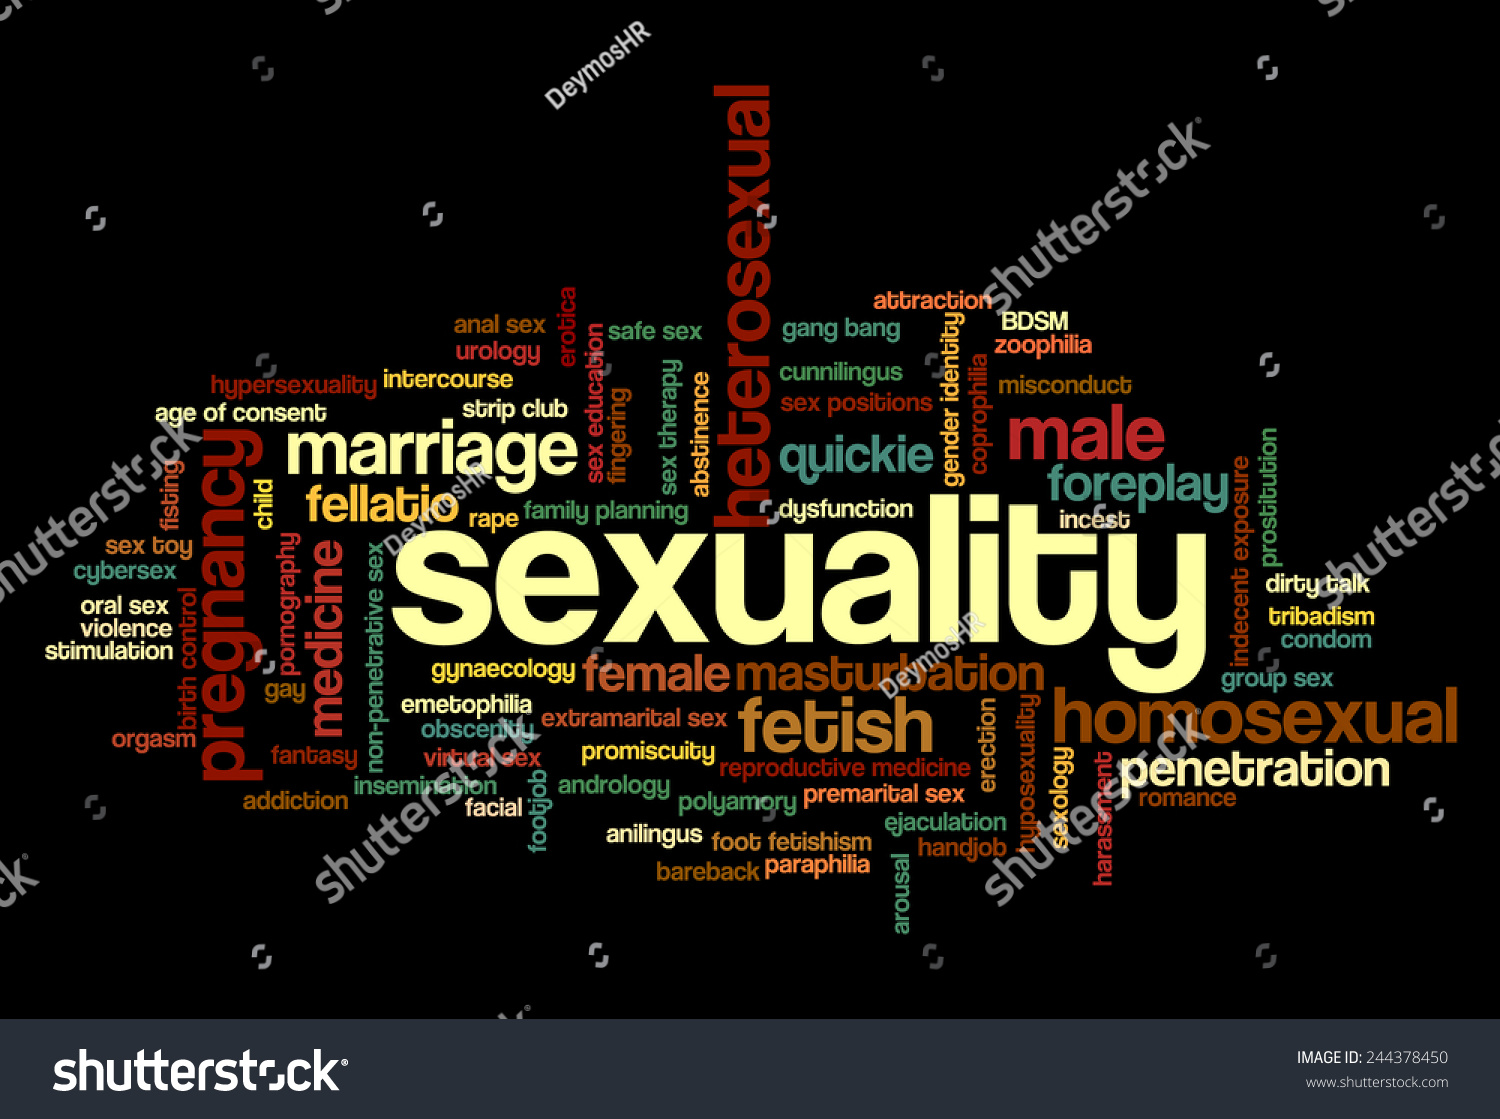 cybersex human sexuality